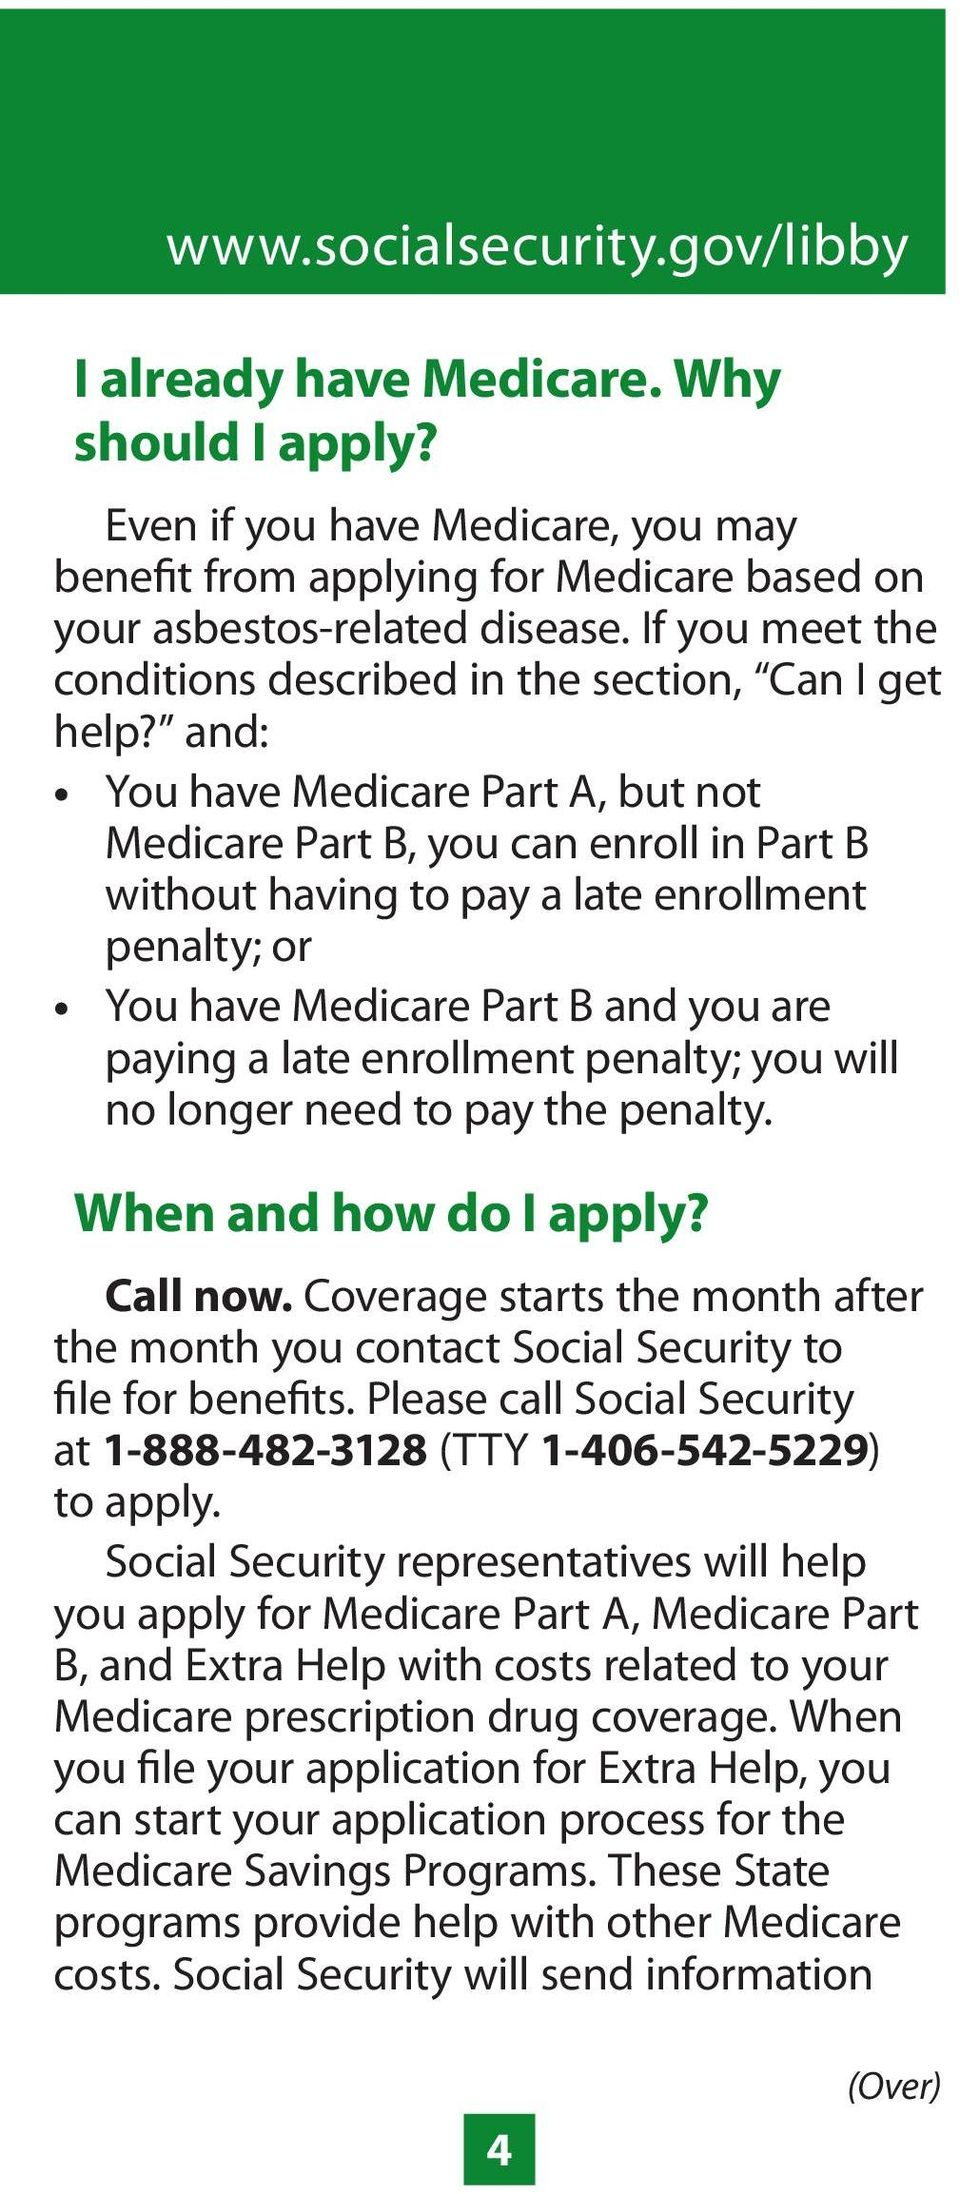 and: You have Medicare Part A, but not Medicare Part B, you can enroll in Part B without having to pay a late enrollment penalty; or You have Medicare Part B and you are paying a late enrollment